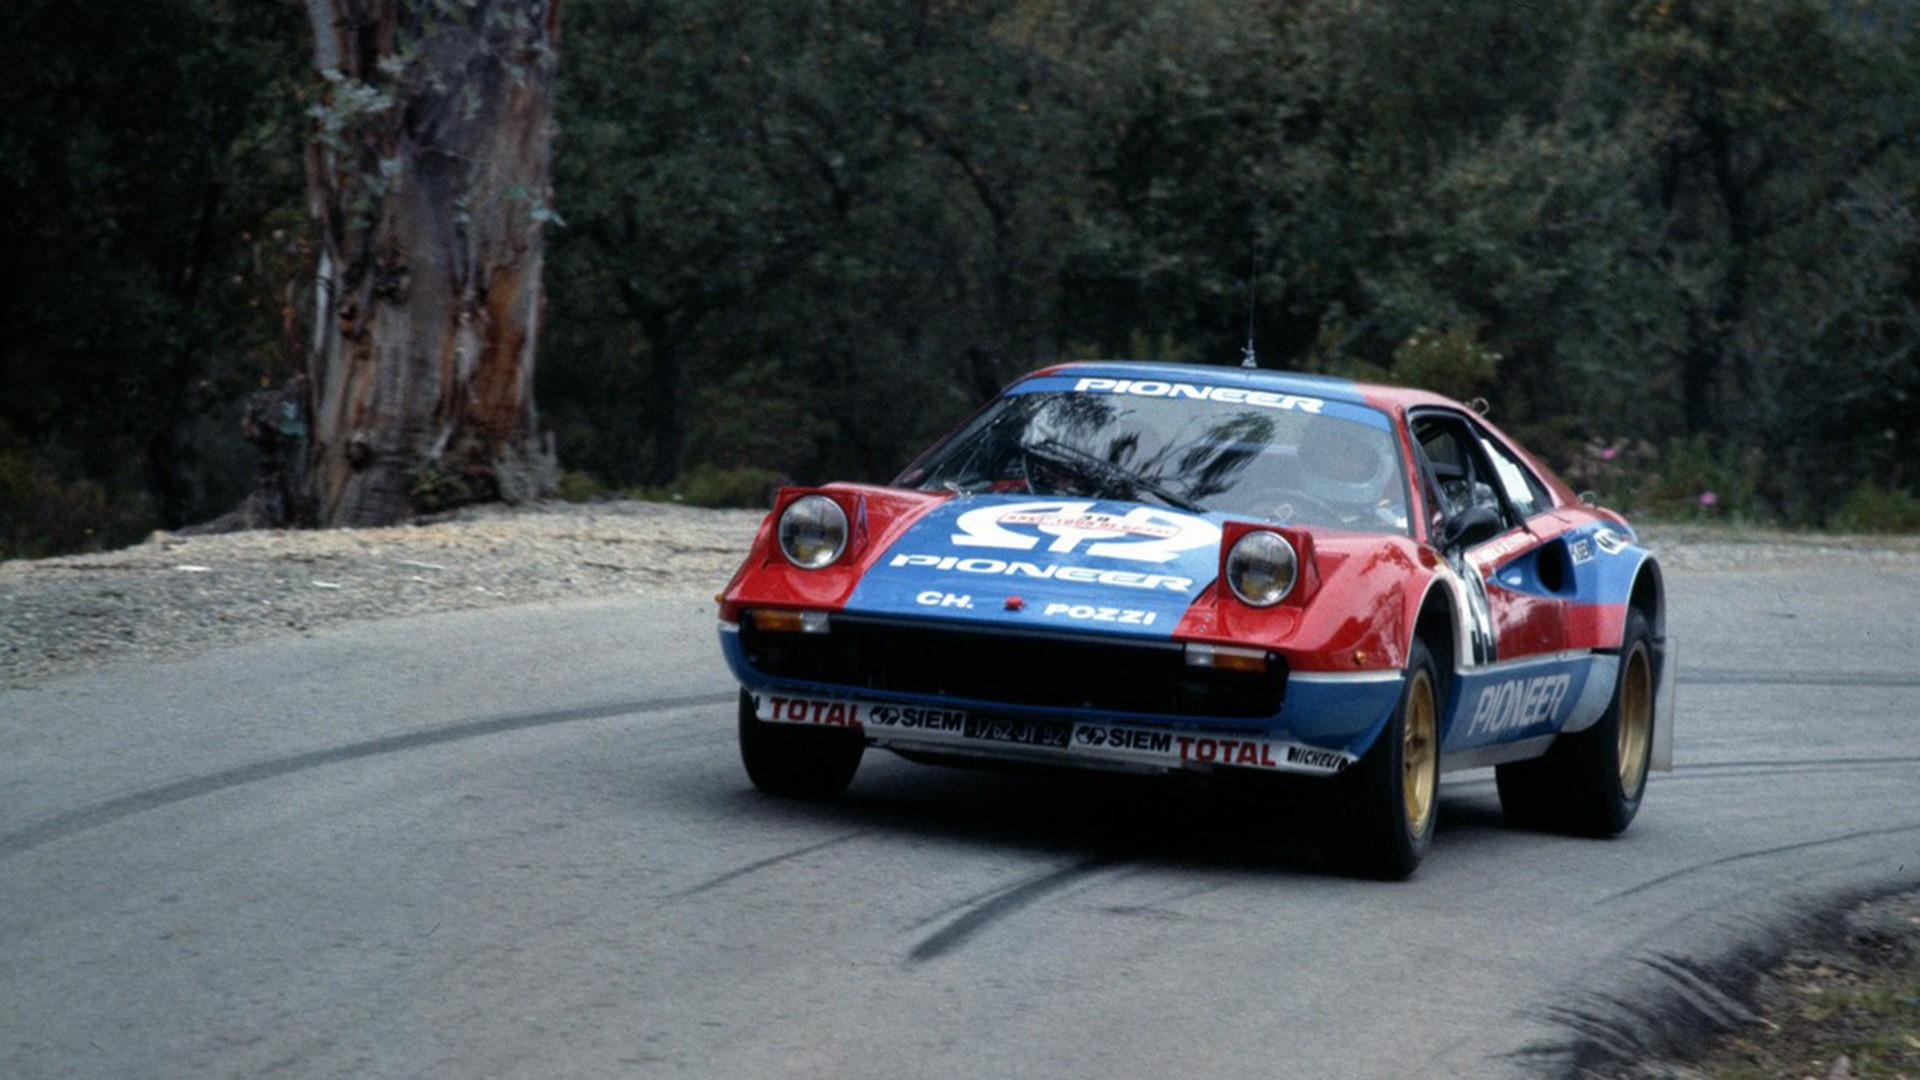 UNSTOPPABLE 308 GTB